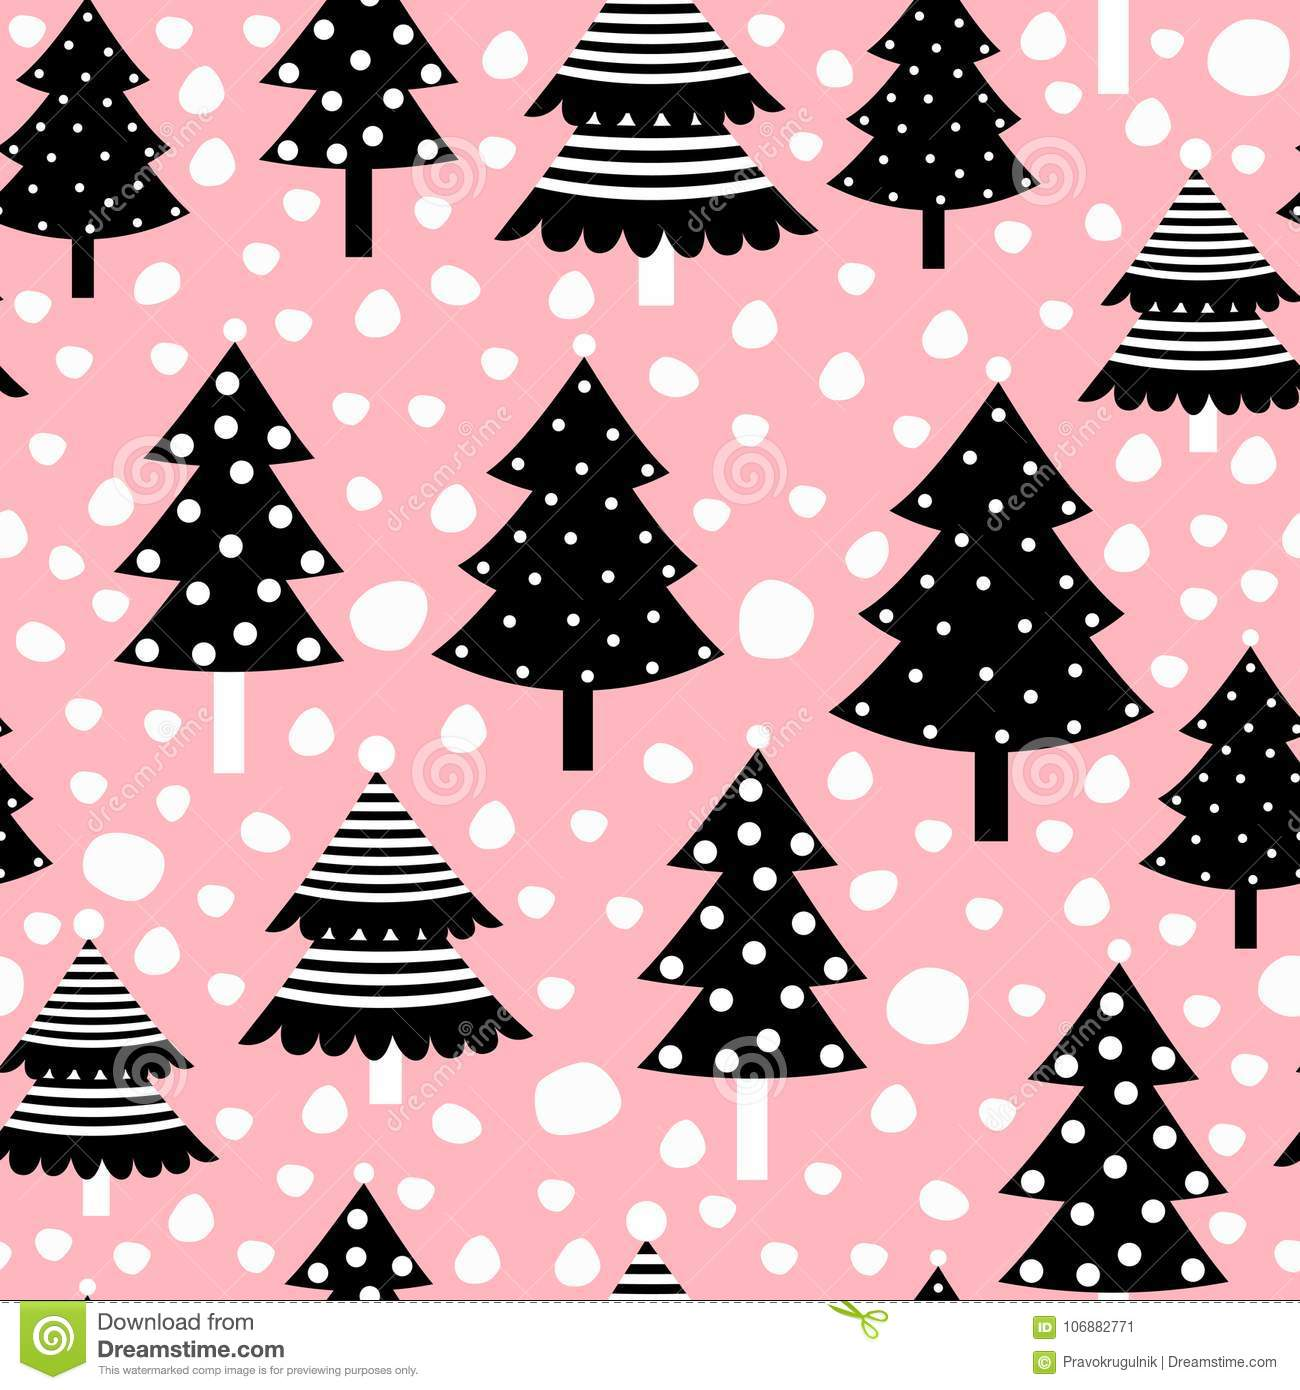 Christmas Seamless Pattern With Black Trees On Pink Background Stock Vector Illustration Of Paper Pattern 106882771